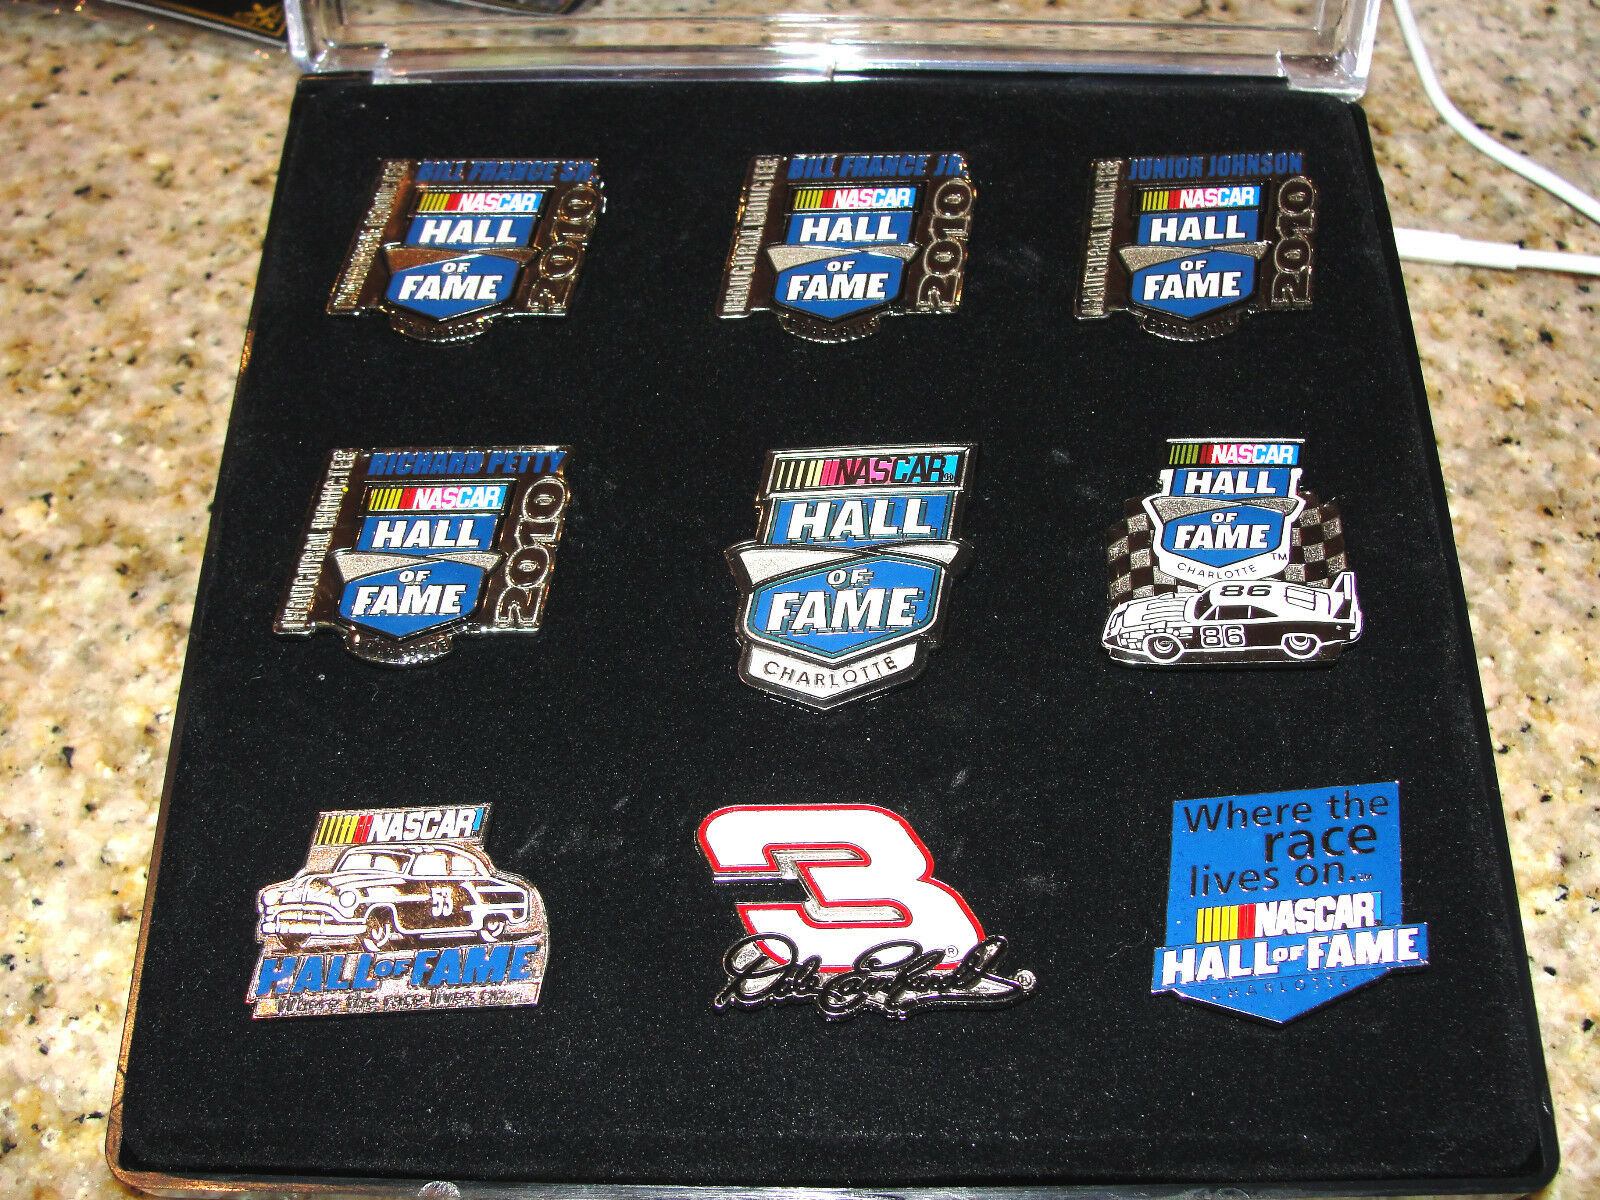 NASCAR INAUCURAL INDUCTEES HALL OF FAME CHARLOTTE 2010 PIN SET OF 9 PINS